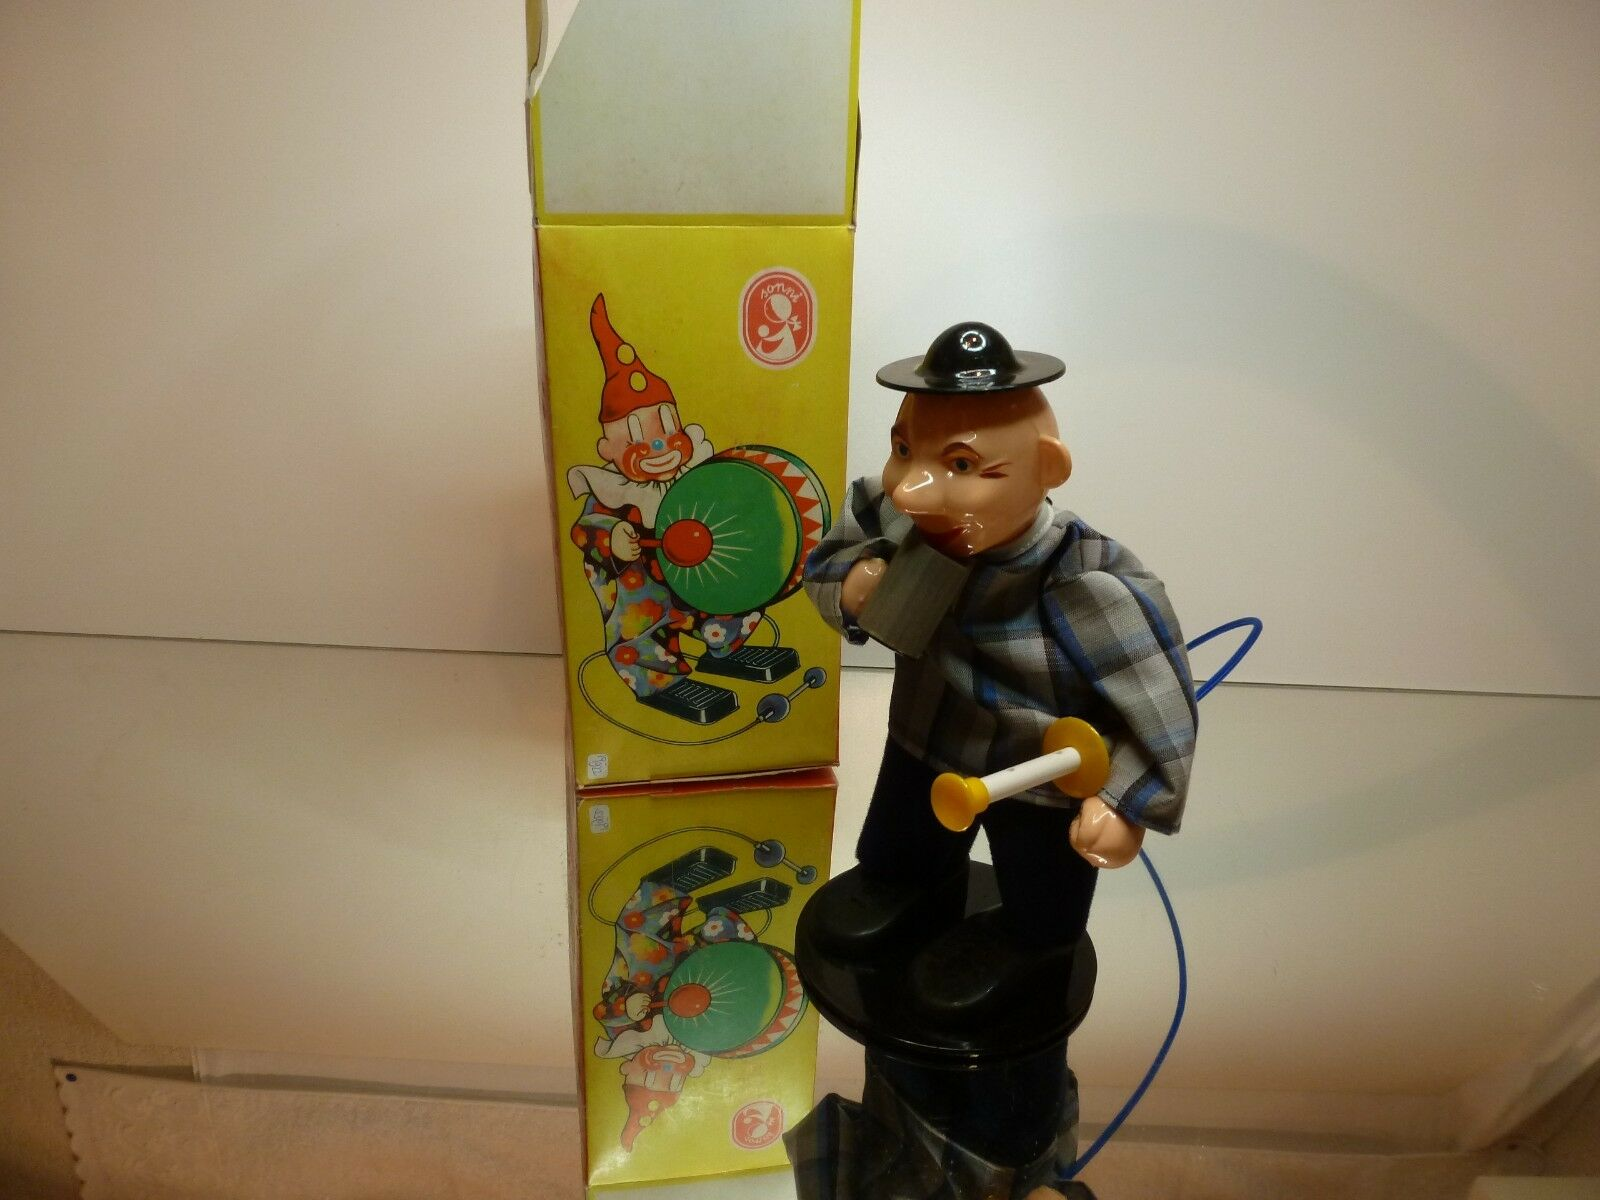 VINTAGE SONNI MACHANICAL DRINKING CLOWN - H21.0cm - VERY GOOD CONDITION IN BOX